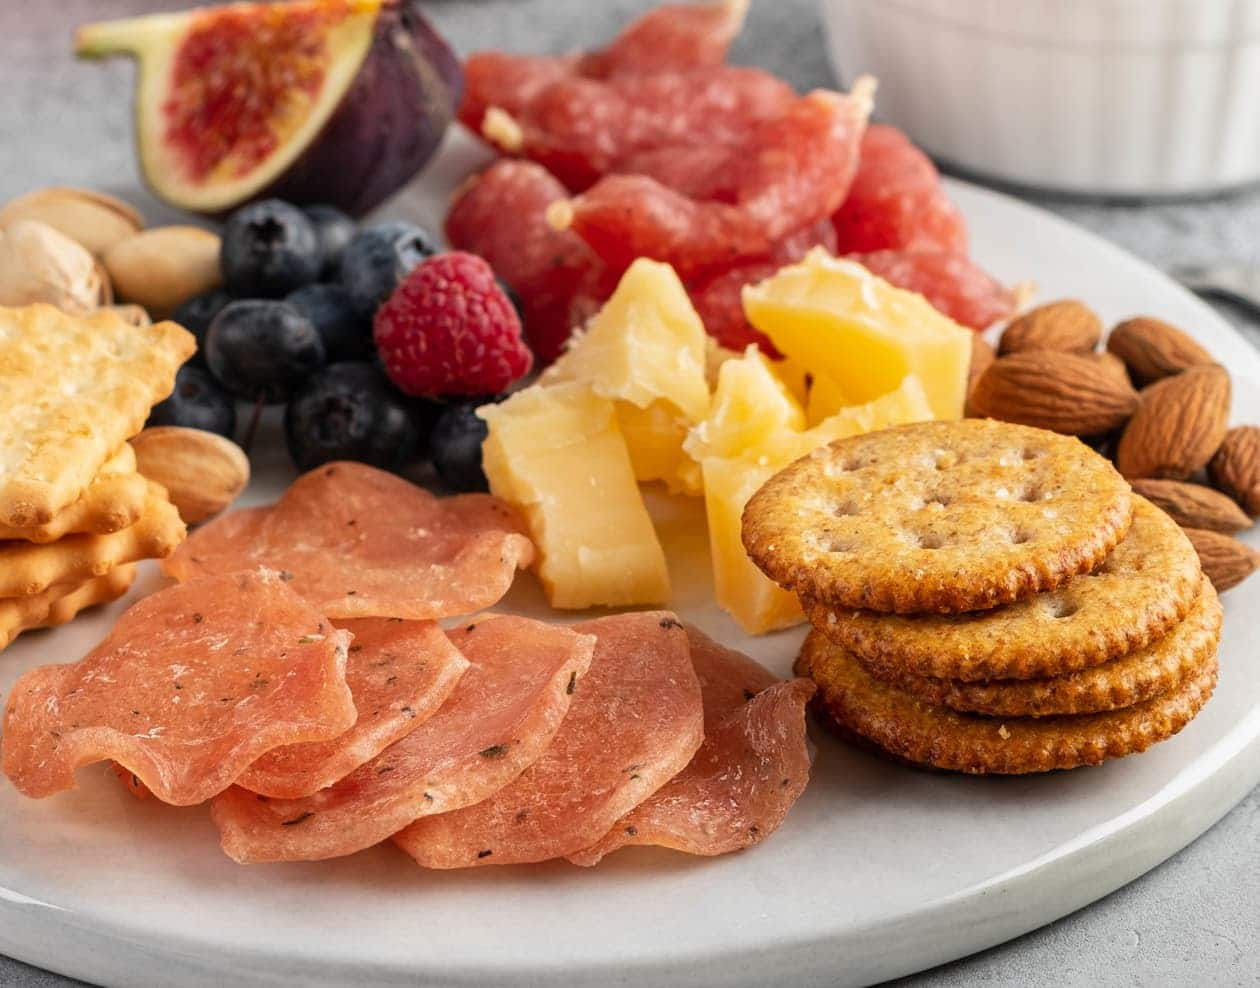 A lunch of crackers, cheese, and fruit